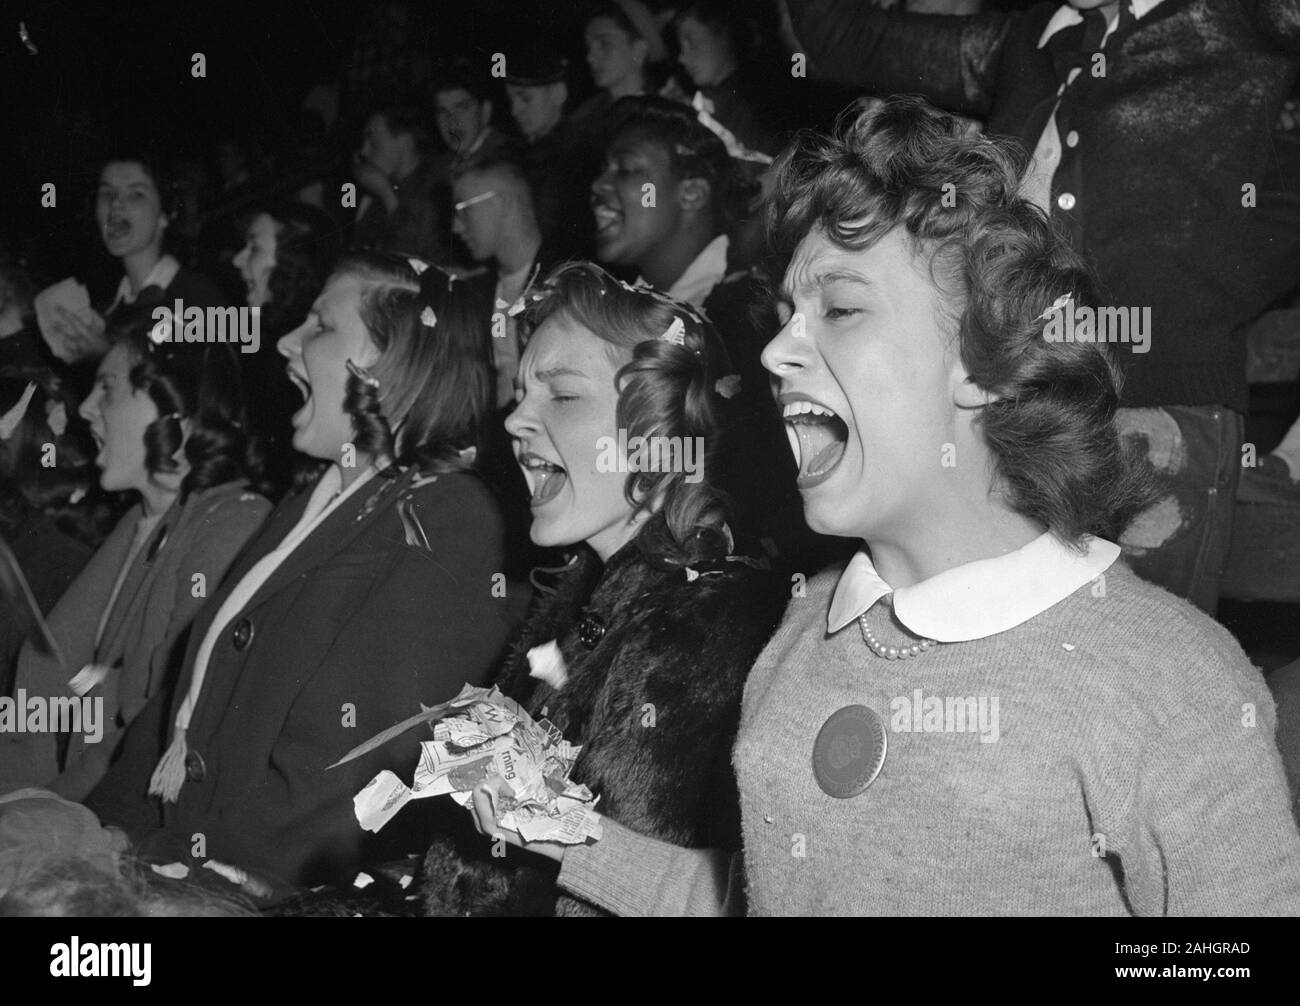 Sports fans at University of Wisconsin - Madison about 1946 Stock Photo